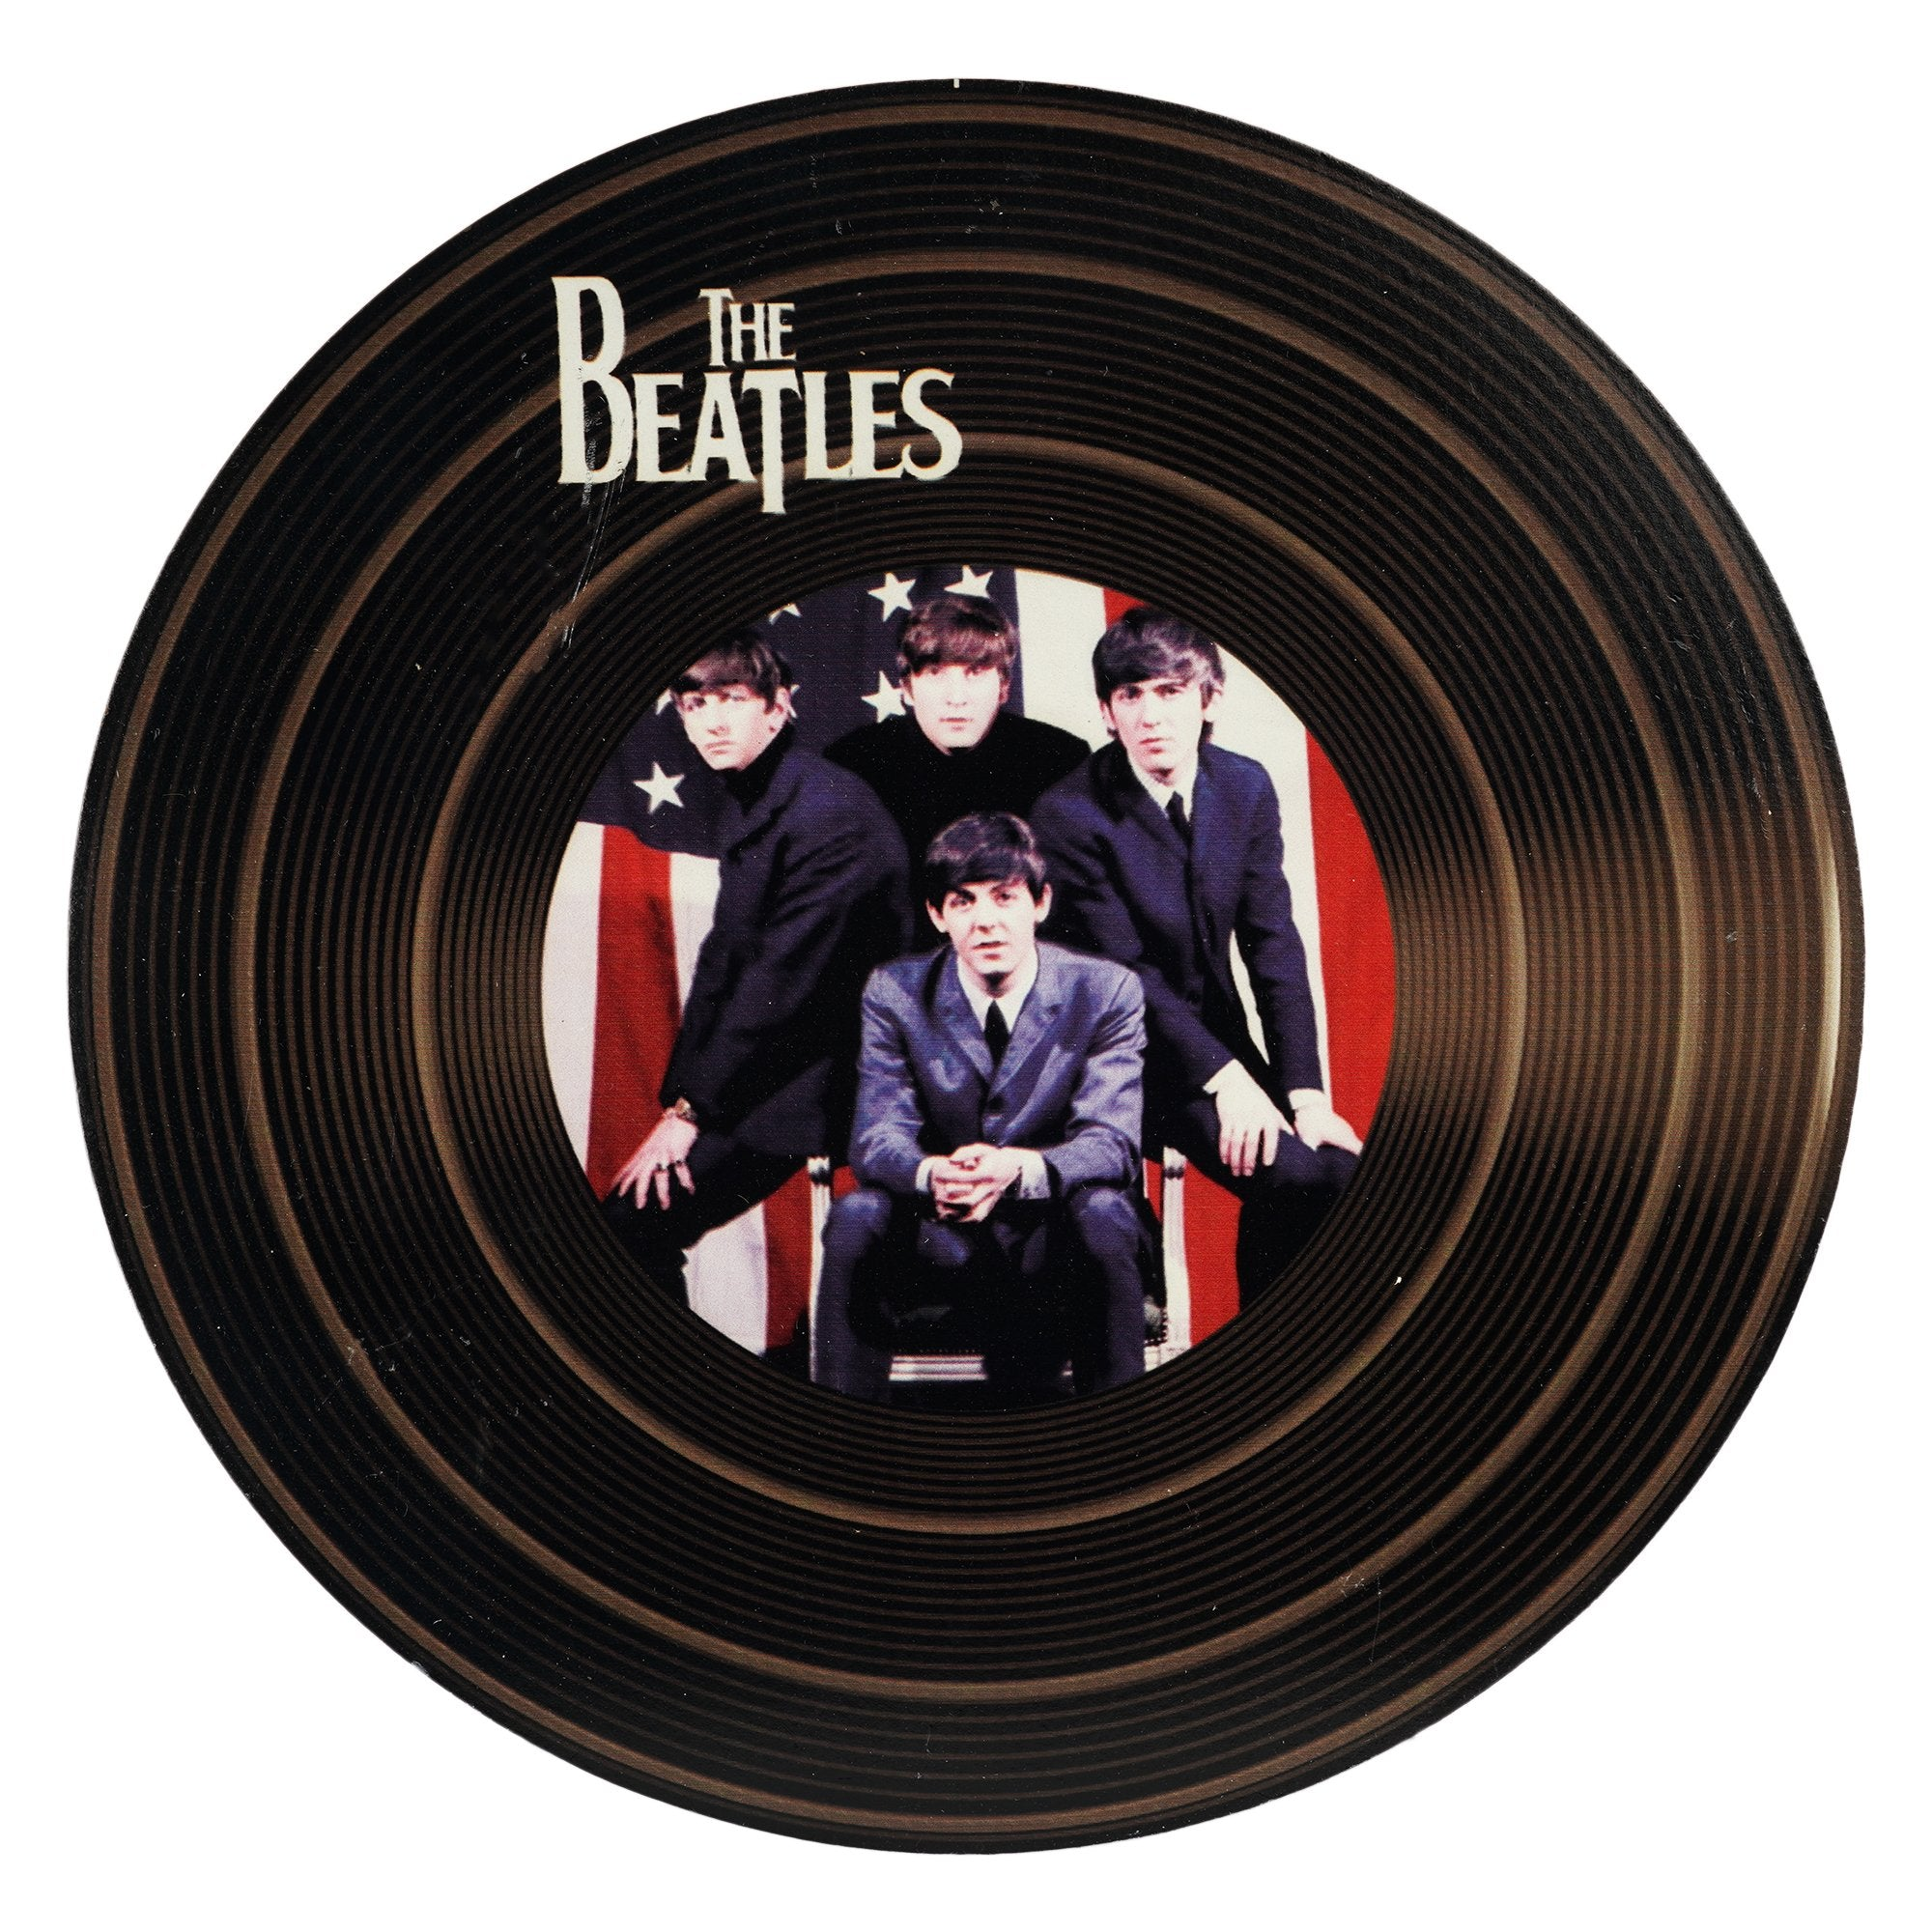 The Beatles Record Wall Disc - Teak Tale